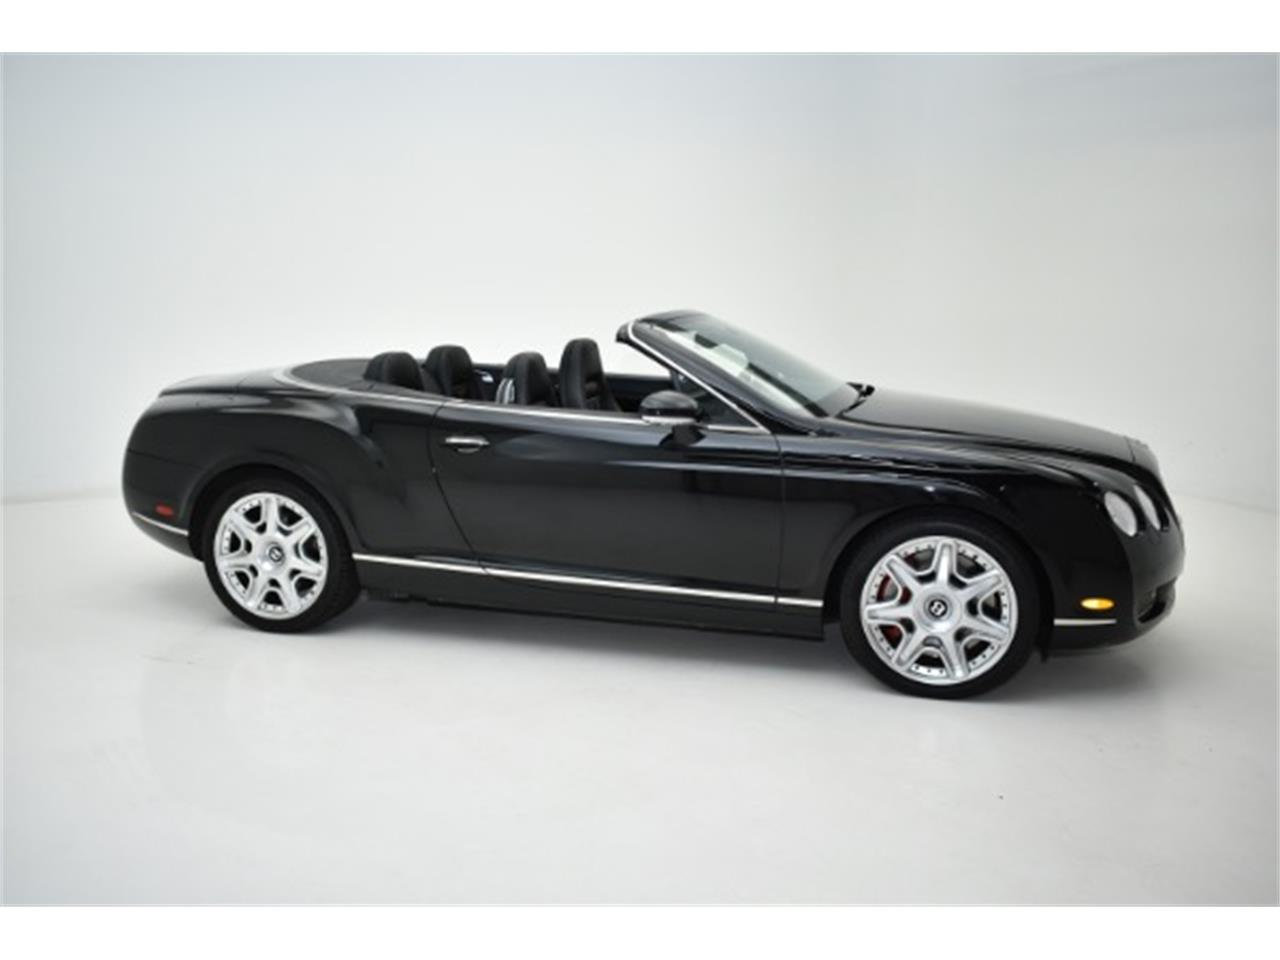 Large Picture of 2009 Bentley Continental GTC Mulliner located in New York - $85,000.00 - L3NN